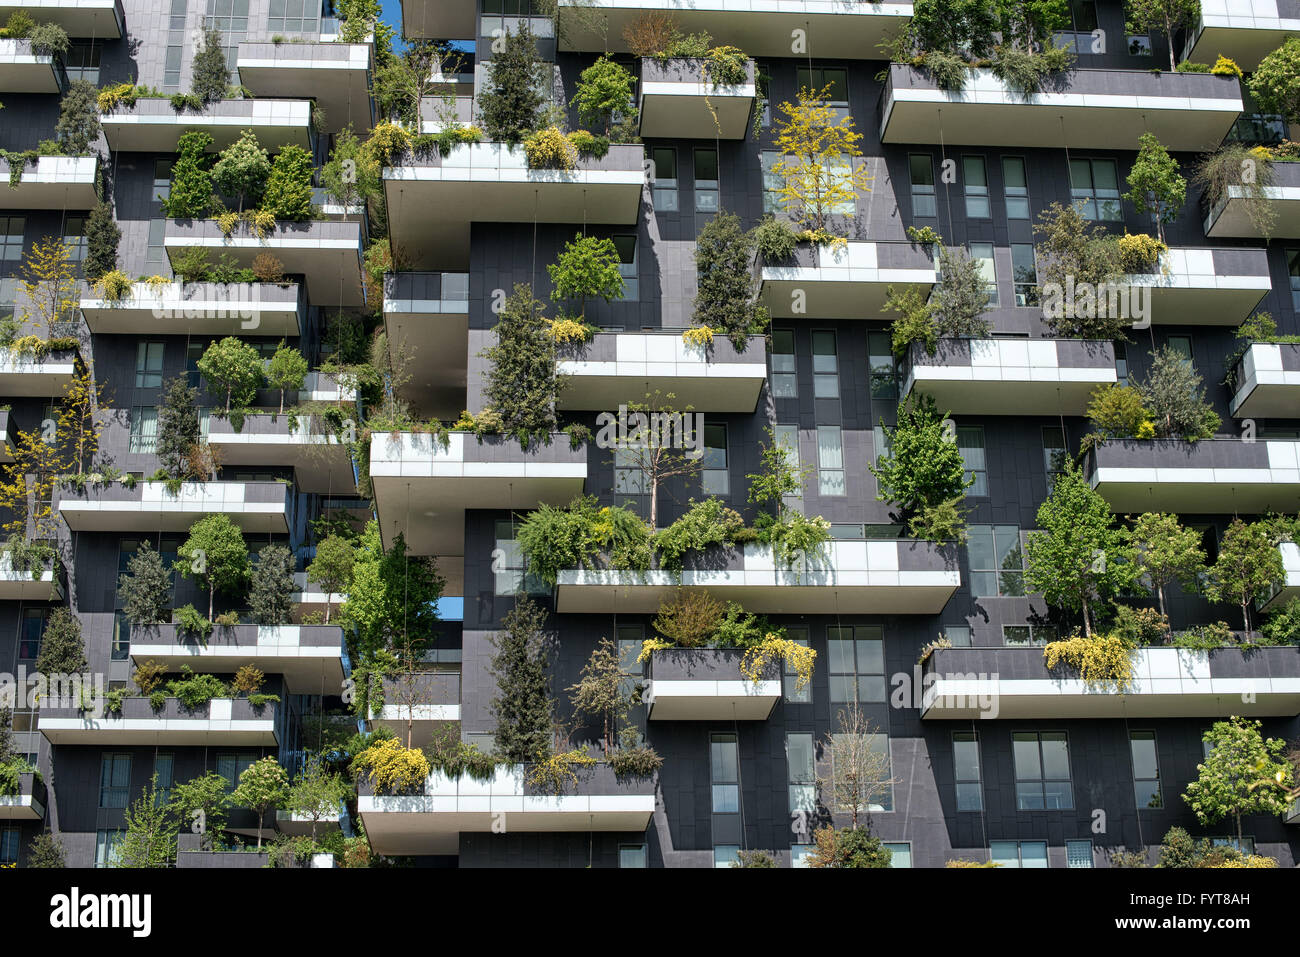 Tight detail view on trees and shrubs on vertical forest apartment building in downtown Milan, Italy - Stock Image